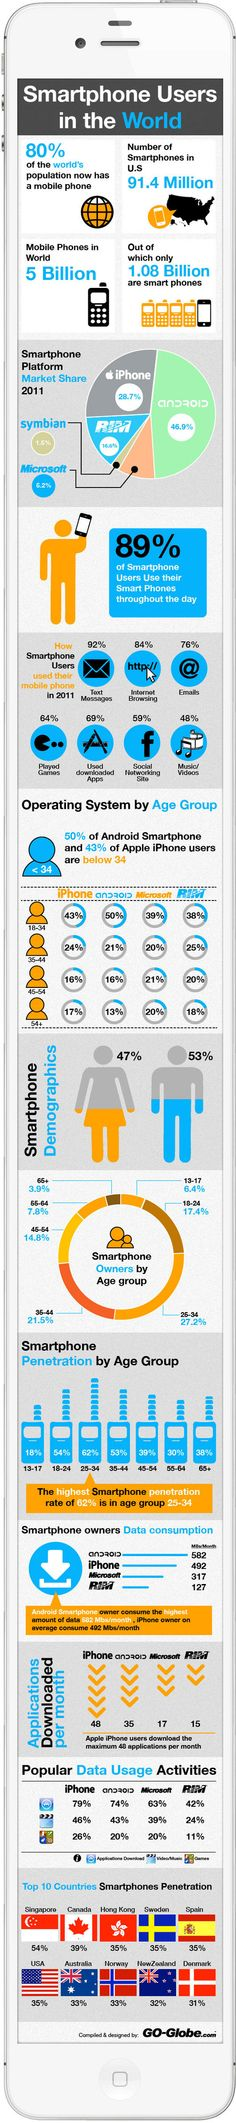 Smartphones in the world. Interesting figures to know better this interesting universe. #mobilephone #smarthphones